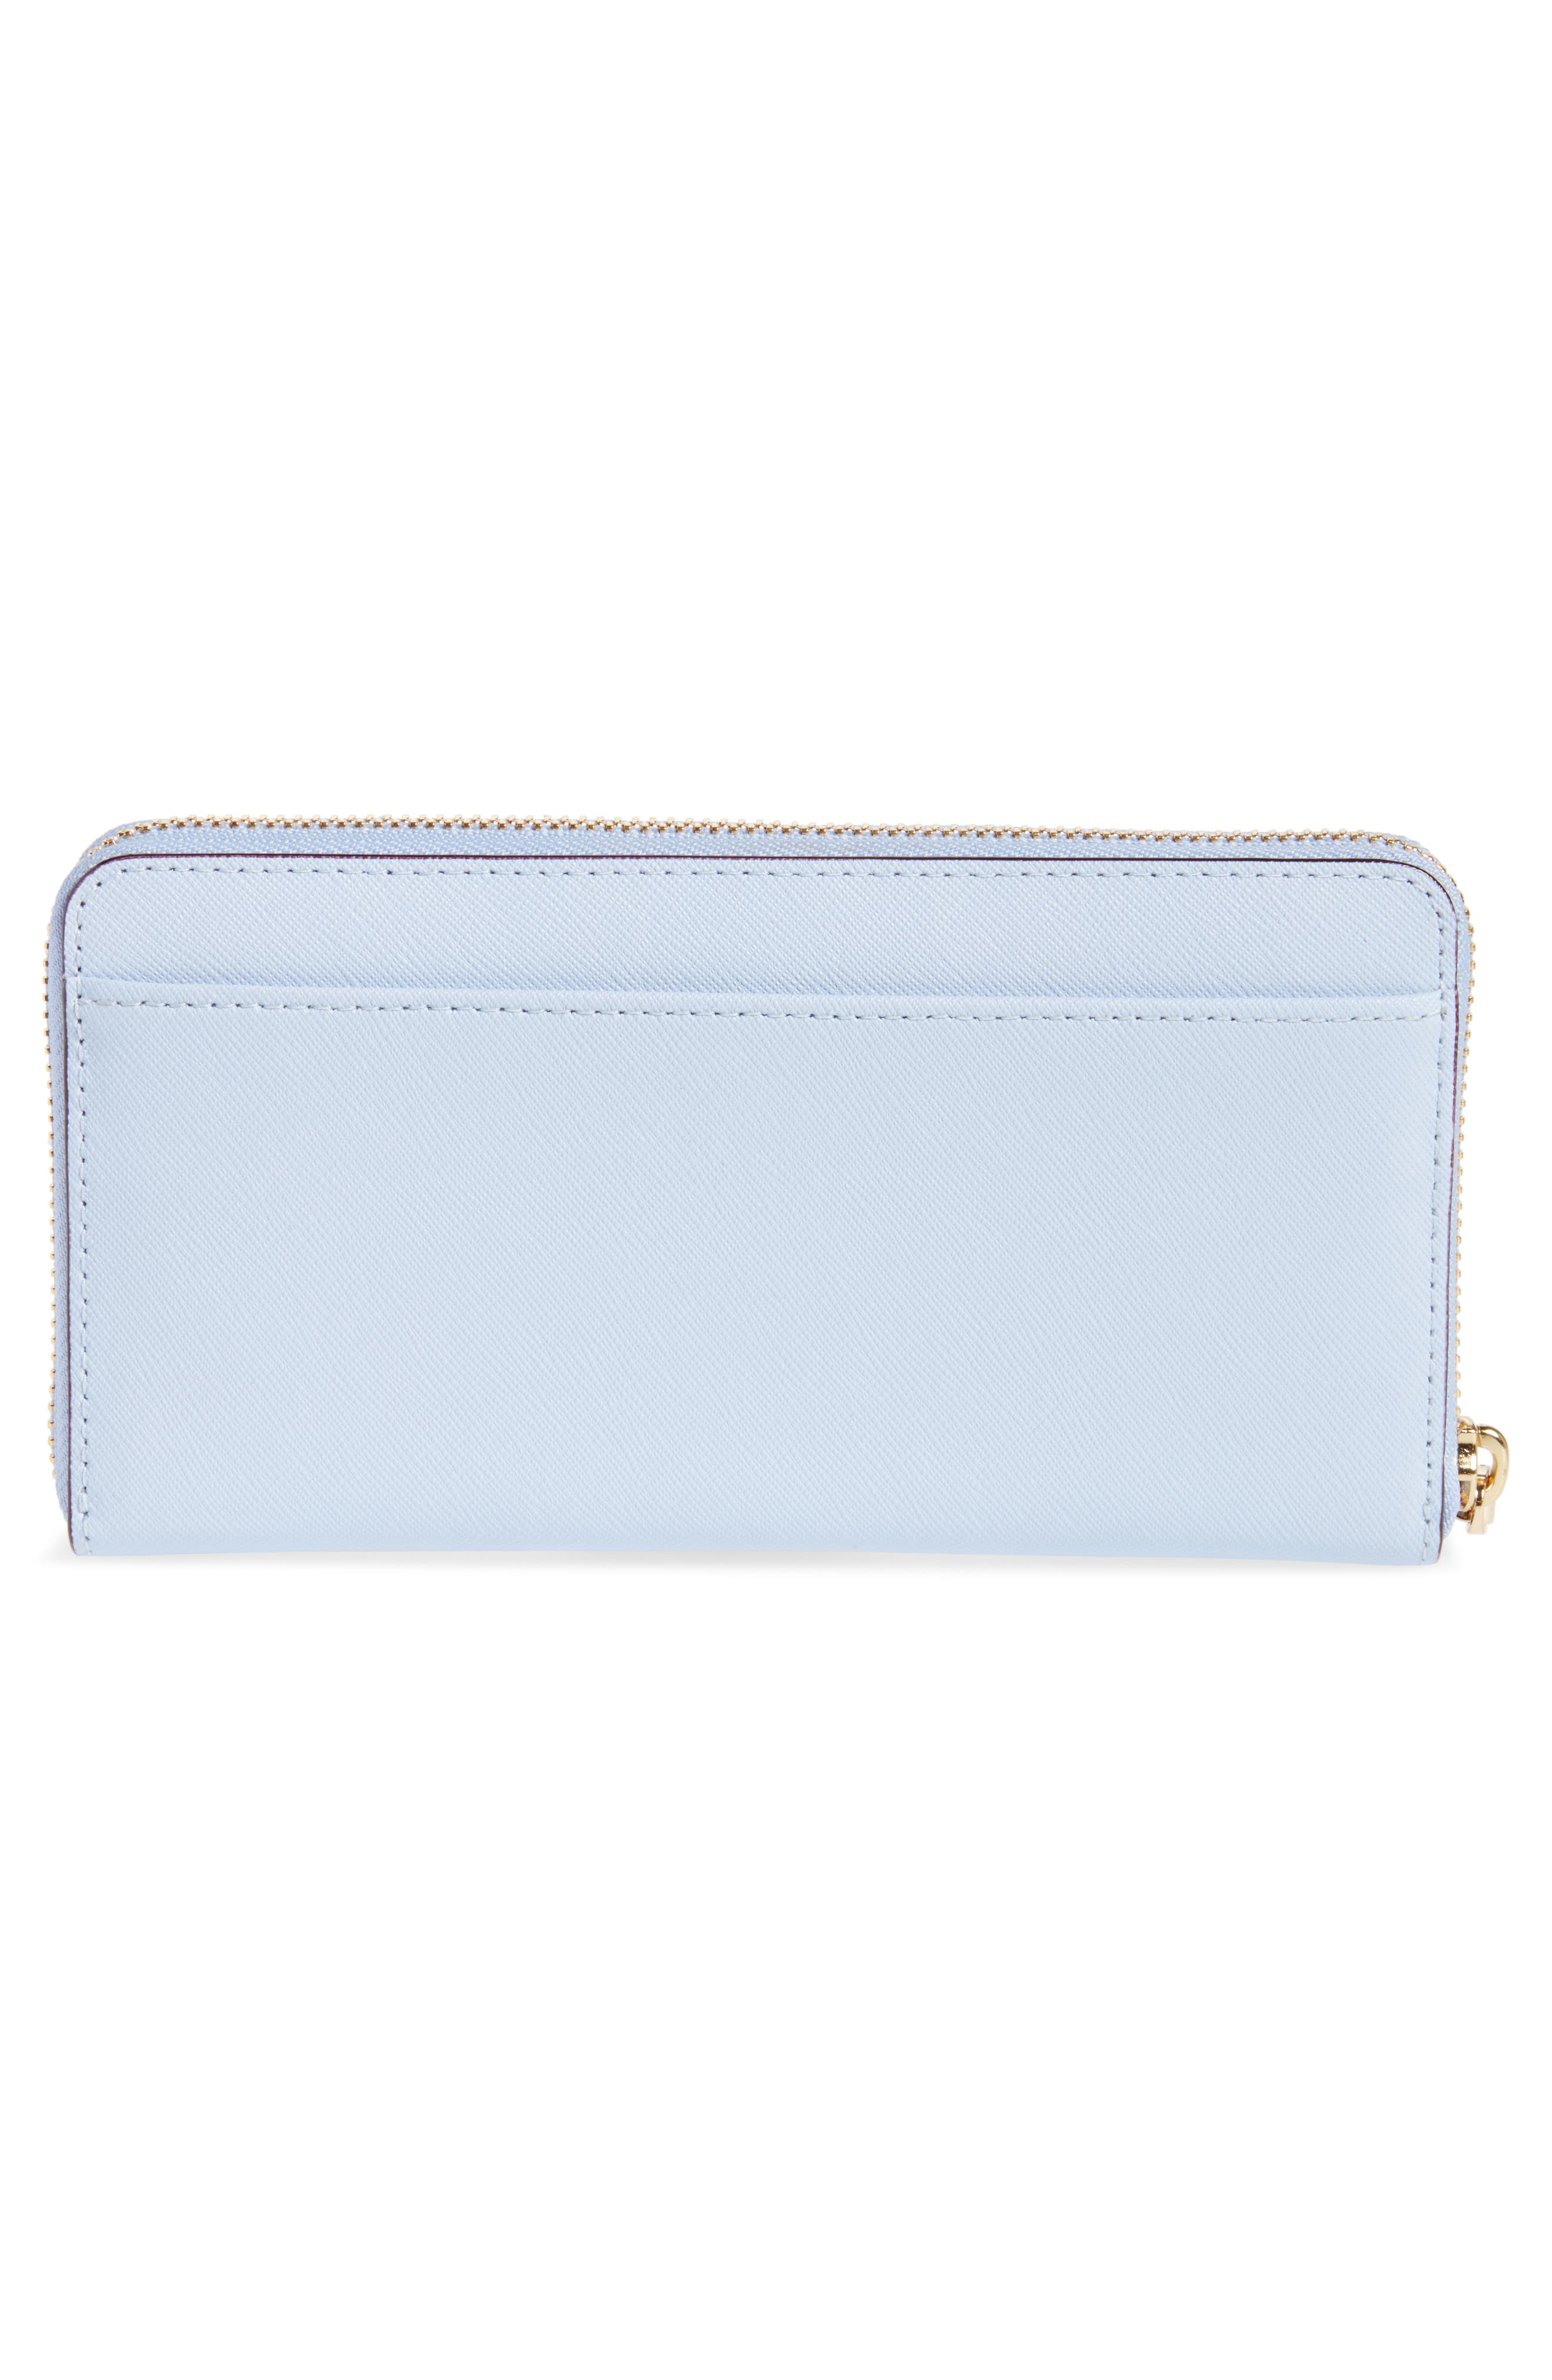 'cameron street - lacey' leather wallet,                             Alternate thumbnail 44, color,